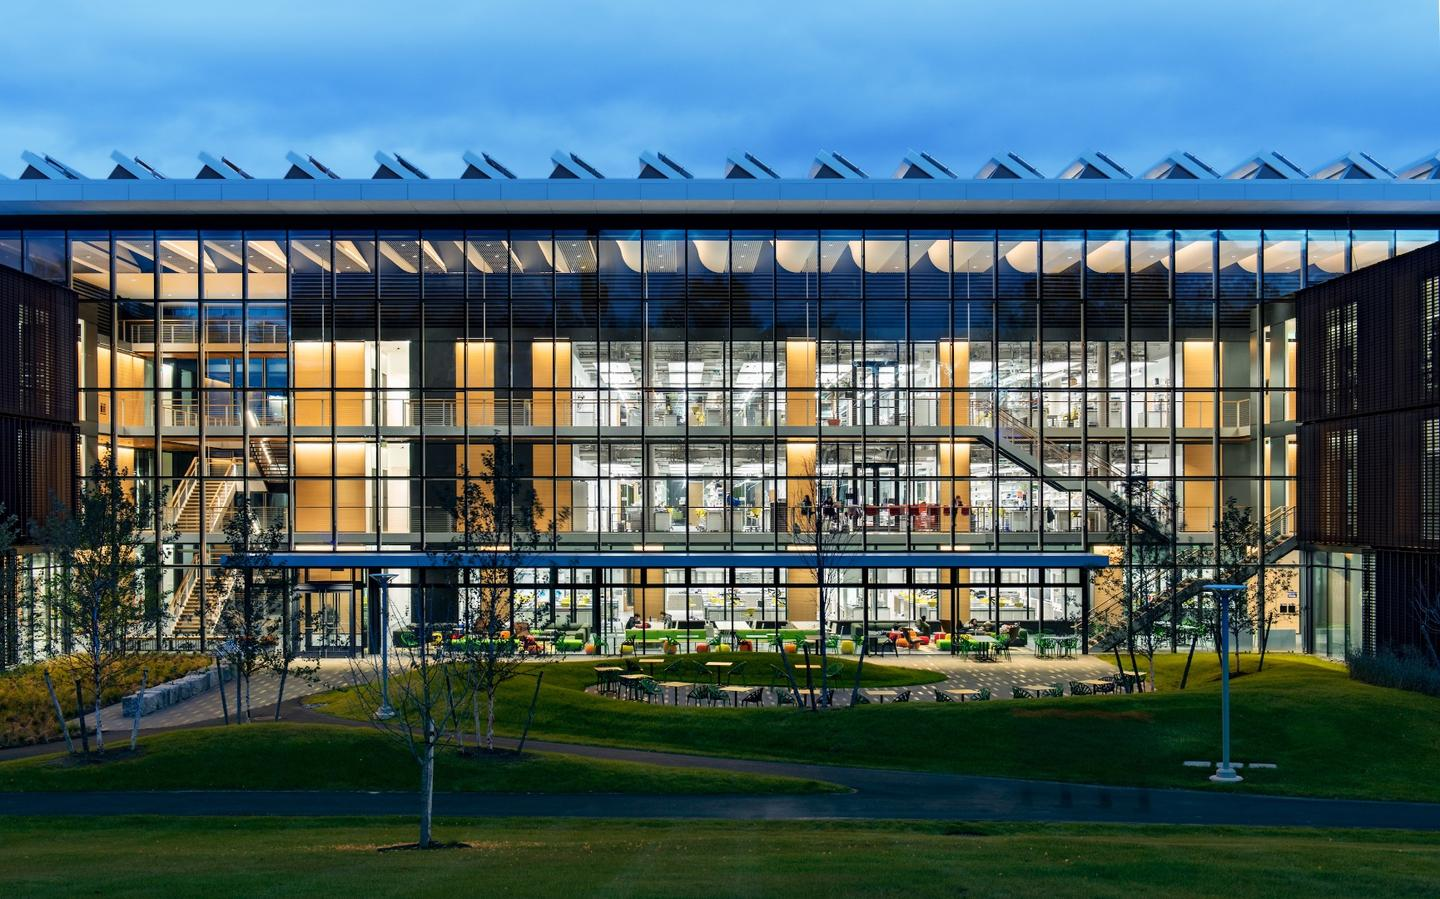 Amherst College New Science Center was designed by Payette andprovides newfacilitiesto support the college's science programs and students